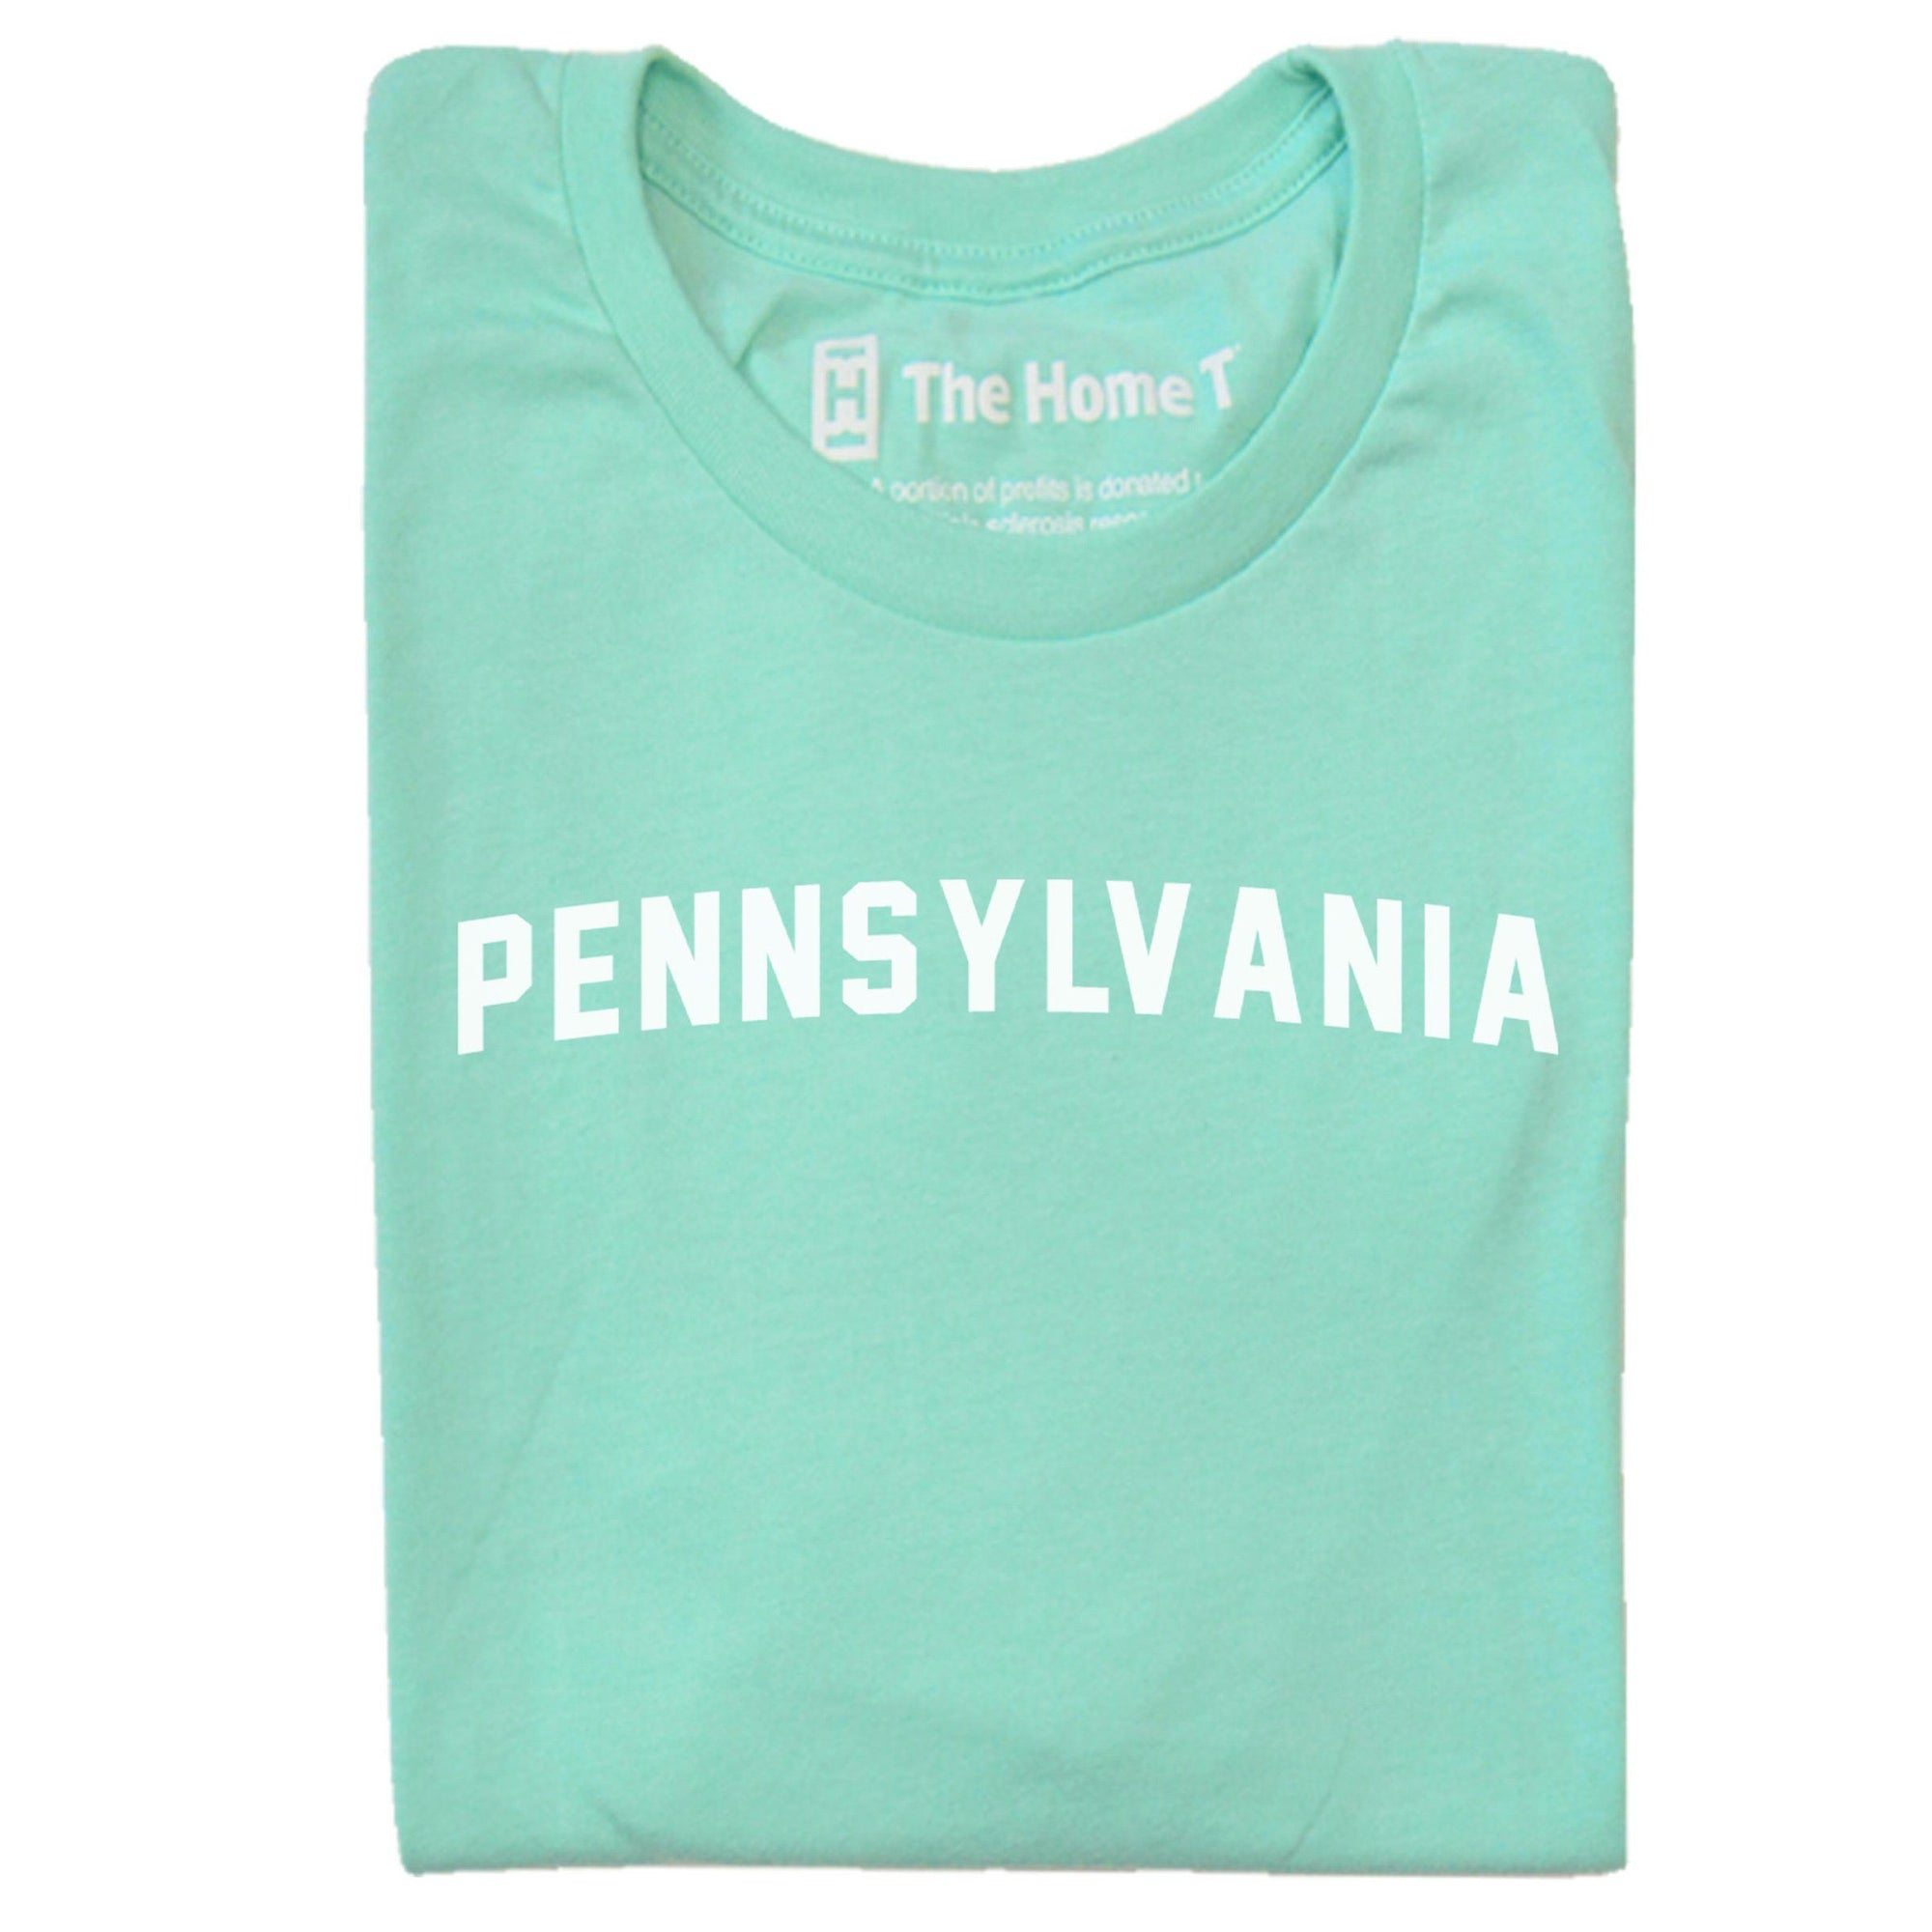 Pennsylvania Arched The Home T XS Mint